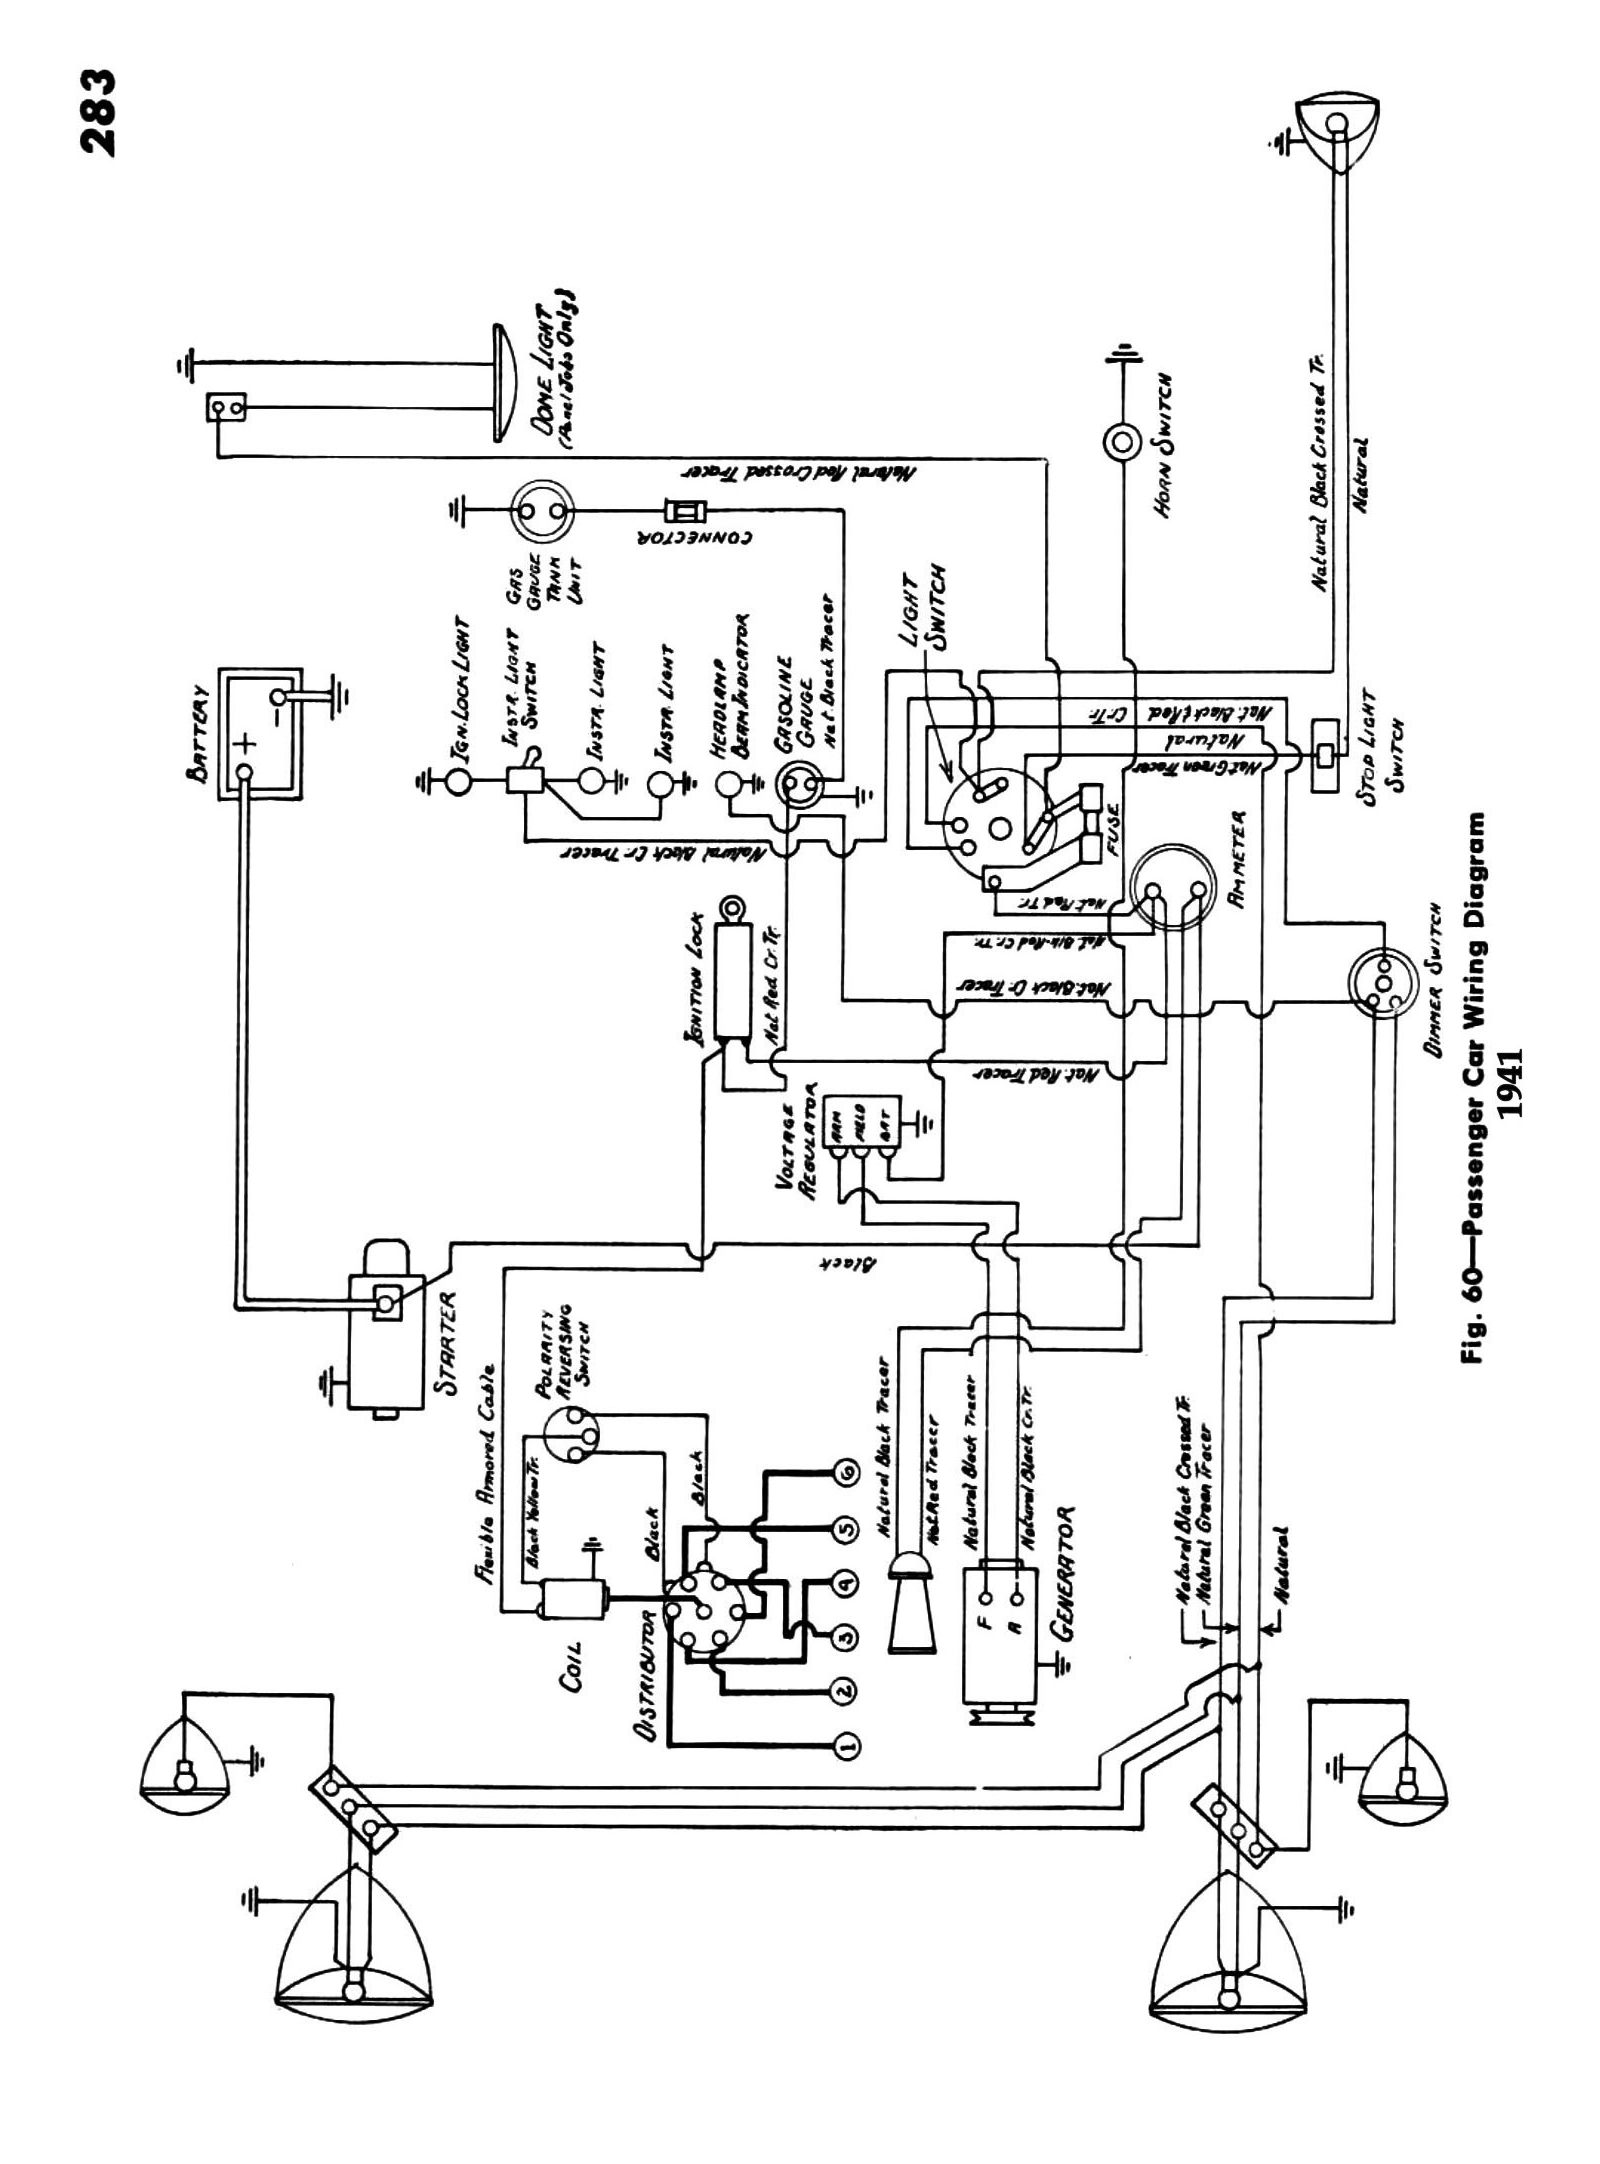 Chevy Wiring diagrams on mazda truck wiring diagrams, mack truck wiring diagrams, freightliner truck wiring diagrams, international truck electrical diagrams, dodge truck wiring diagrams, international truck parts diagrams, cat truck wiring diagrams, international truck wiring diagrams, kenworth truck wiring diagrams, chevrolet truck wiring diagrams, ihc truck parts, medium duty truck wiring diagrams, ford truck wiring diagrams, gm truck wiring diagrams,